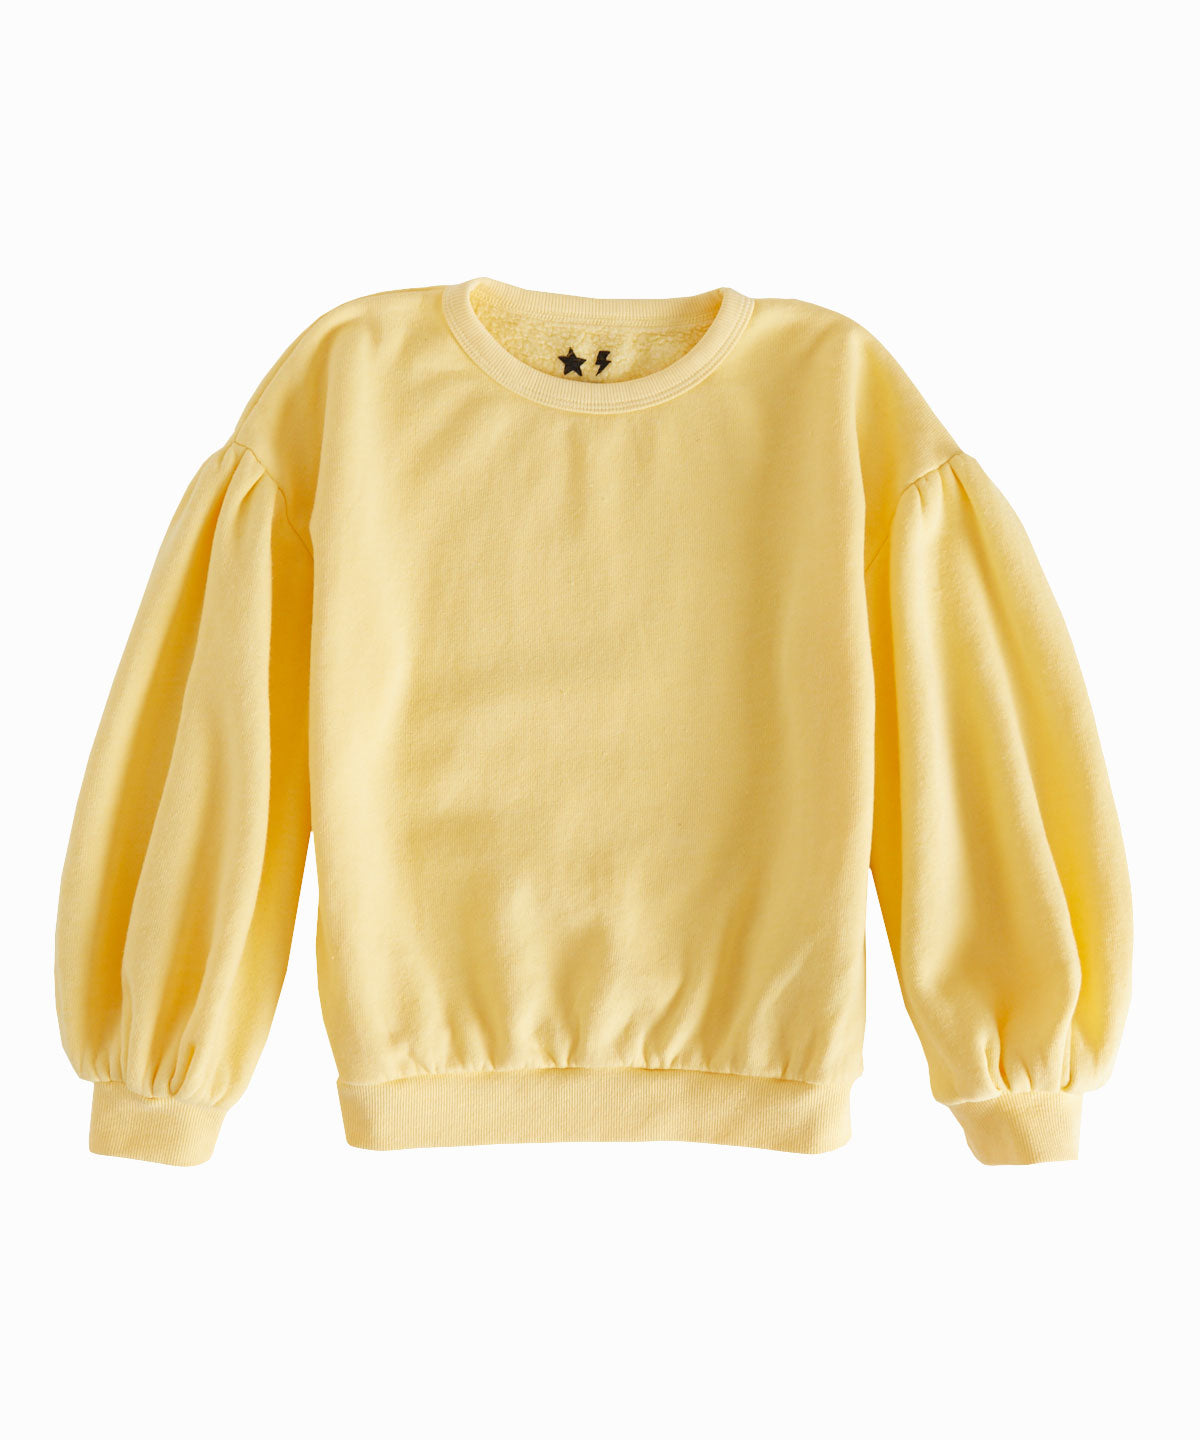 Yellow Sherpa Crewneck Sweatshirt